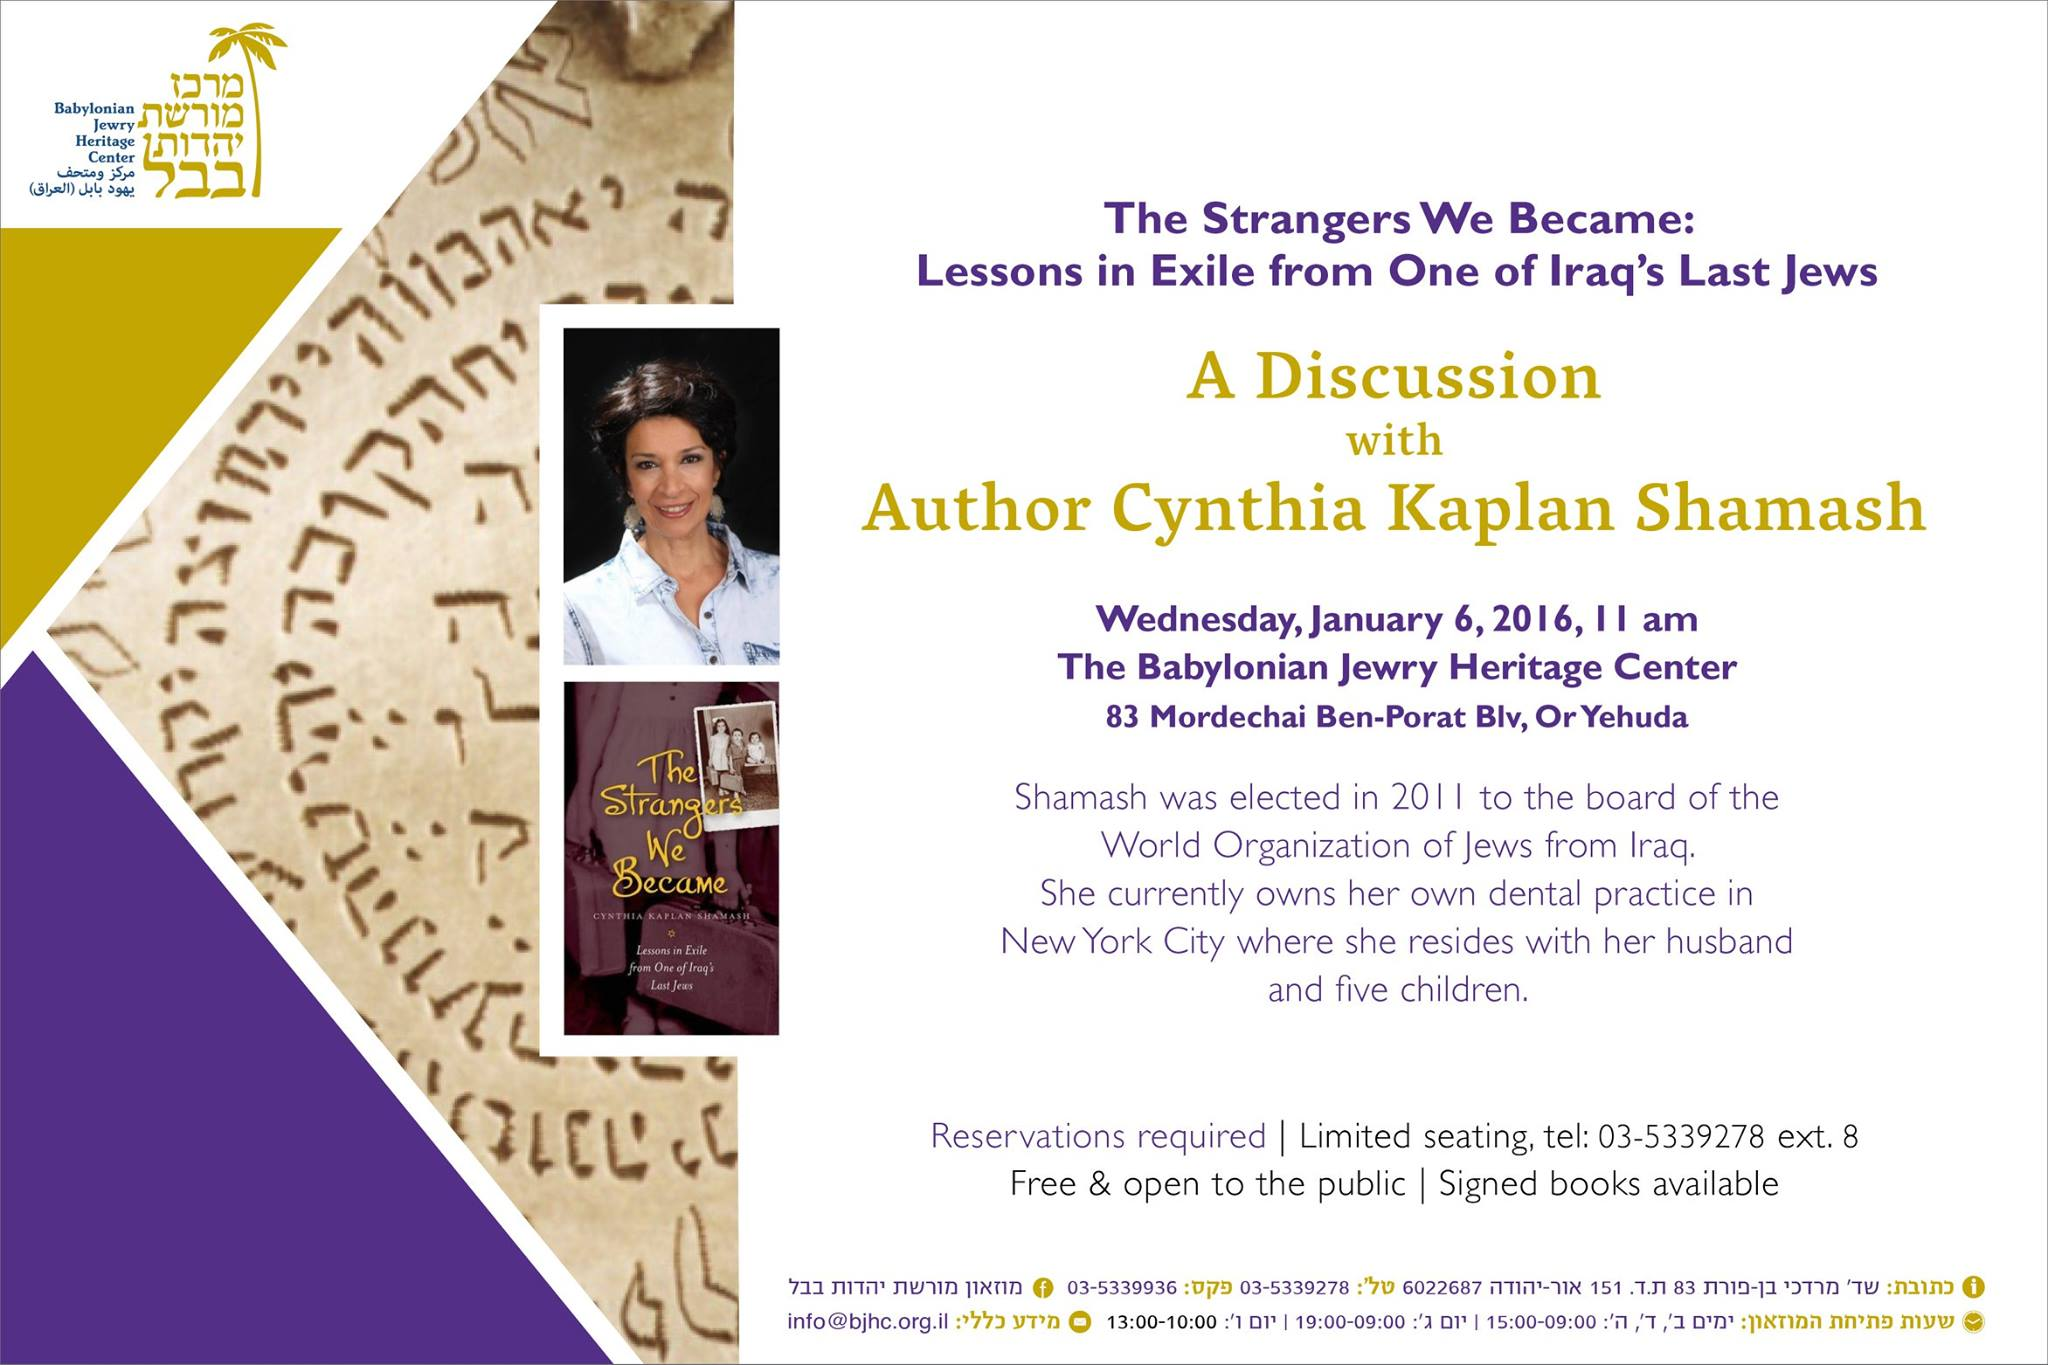 Flyer for Cynthia's speech at The Babylonian Jewry Heritage Center in Israel